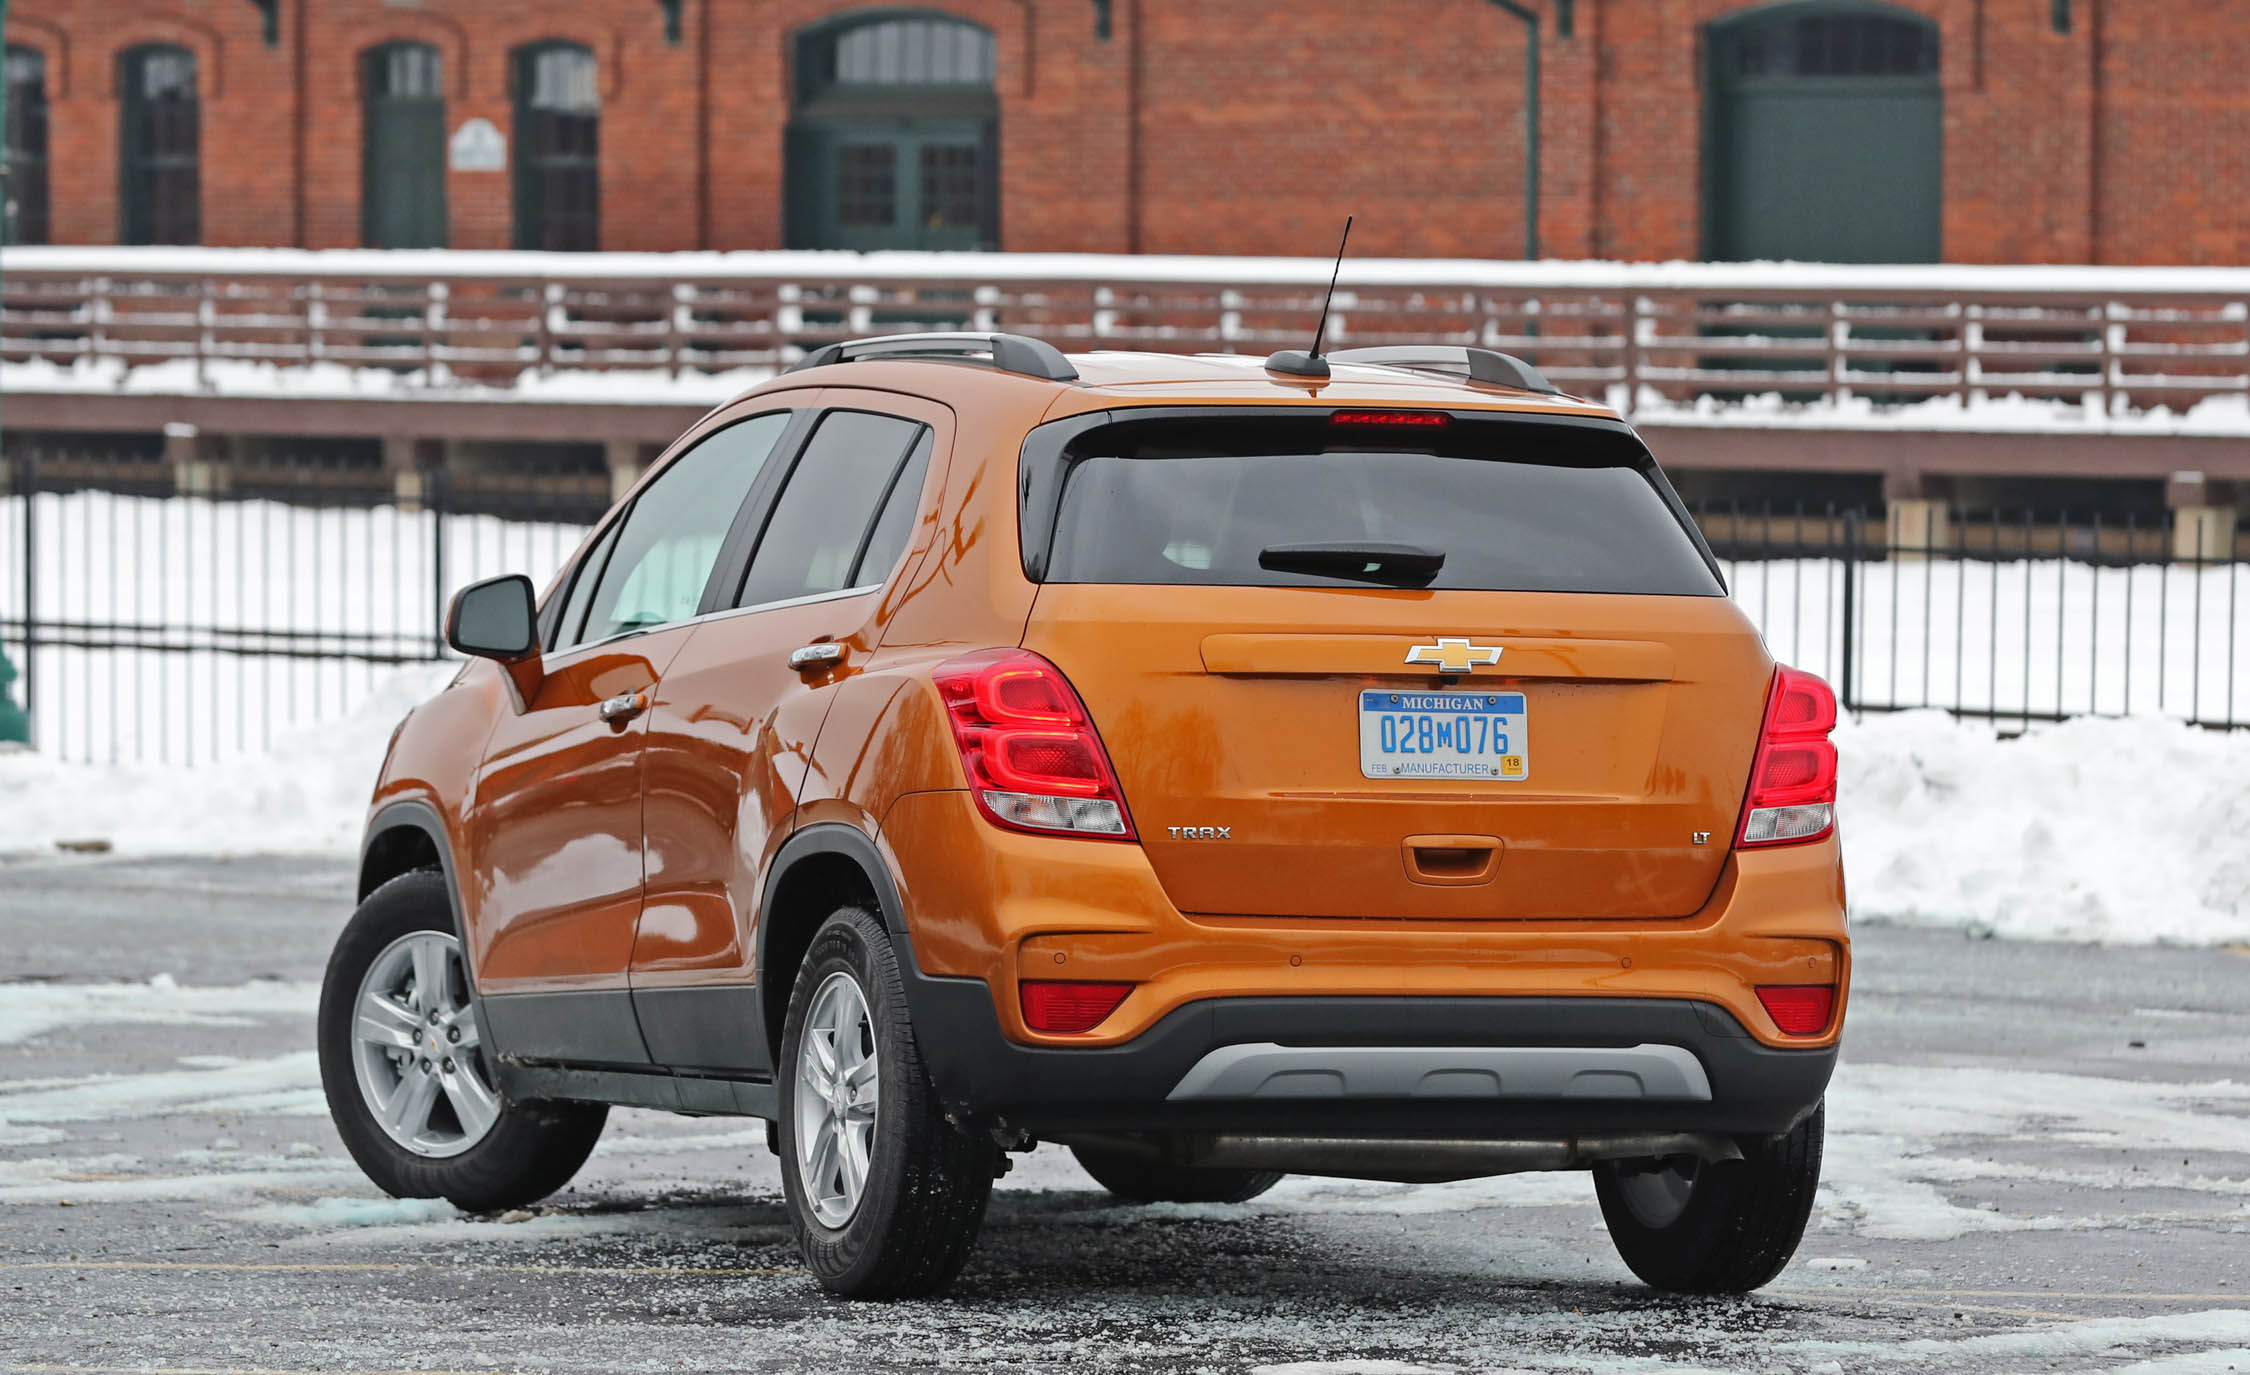 2017 Chevrolet Trax Exterior Rear (Photo 3 of 47)